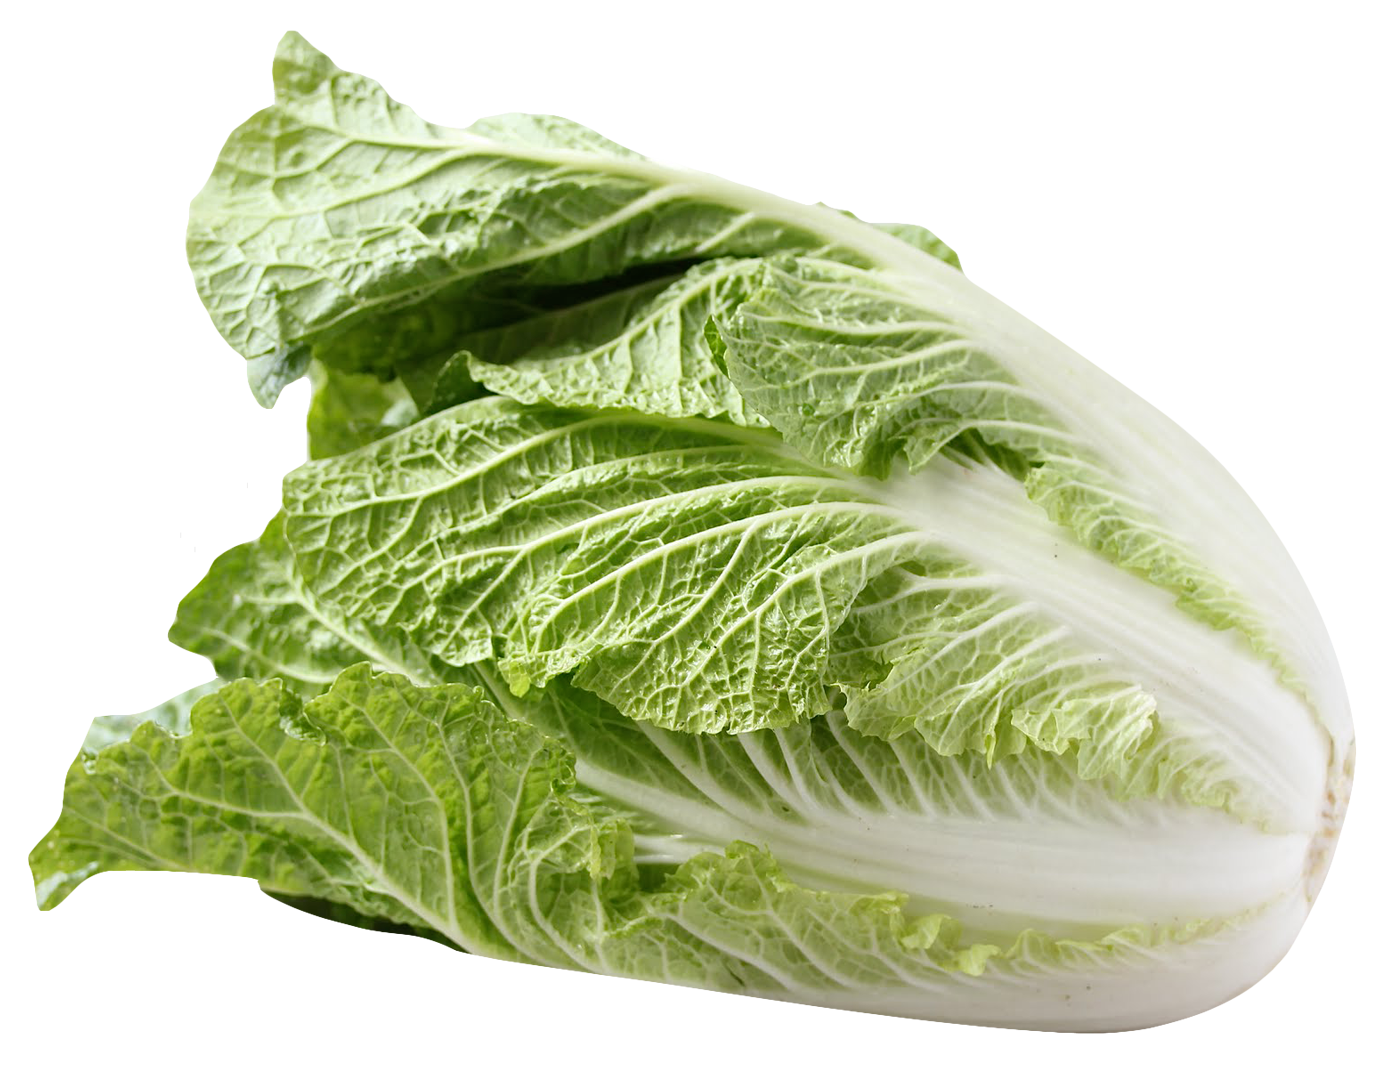 Cabbage clipart napa cabbage. Png image purepng free